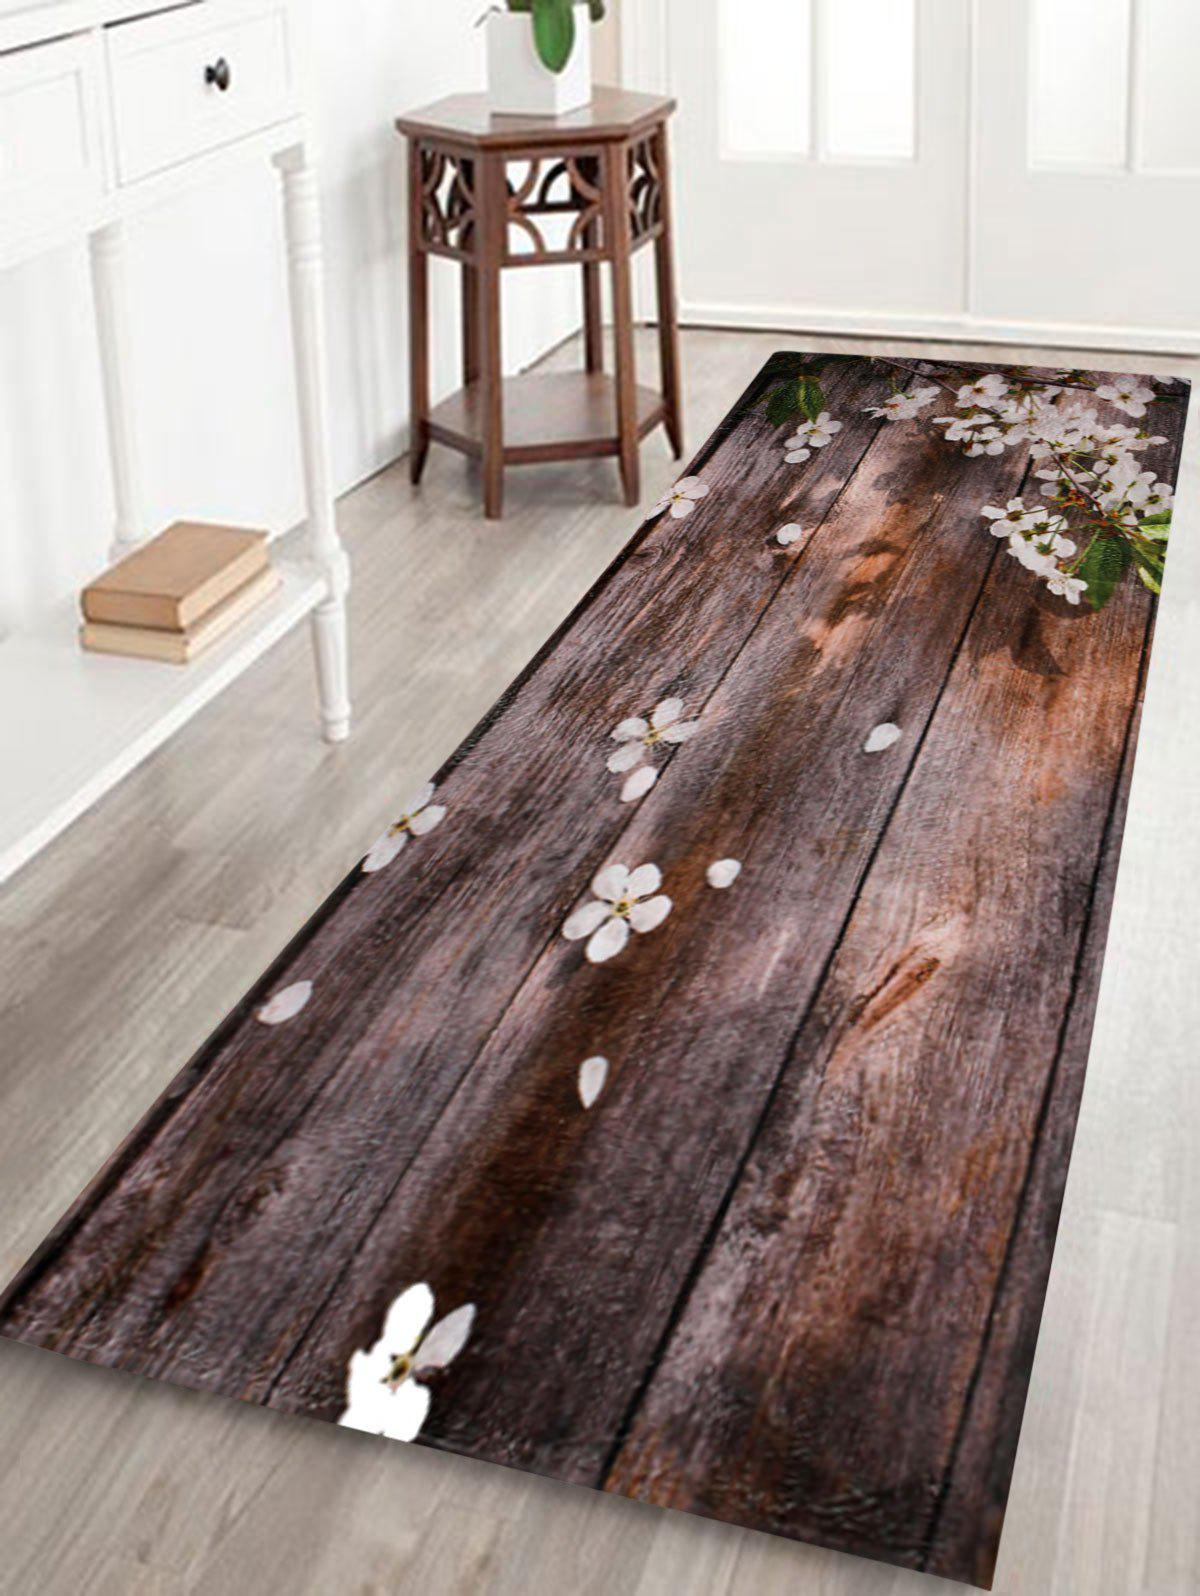 Coral Fleece Vintage Plank Floral Bathroom RugHOME<br><br>Size: W24 INCH * L71 INCH; Color: BROWN; Products Type: Bath rugs; Materials: Coral FLeece; Pattern: Floral; Style: Vintage; Shape: Rectangle; Package Contents: 1 x Rug;